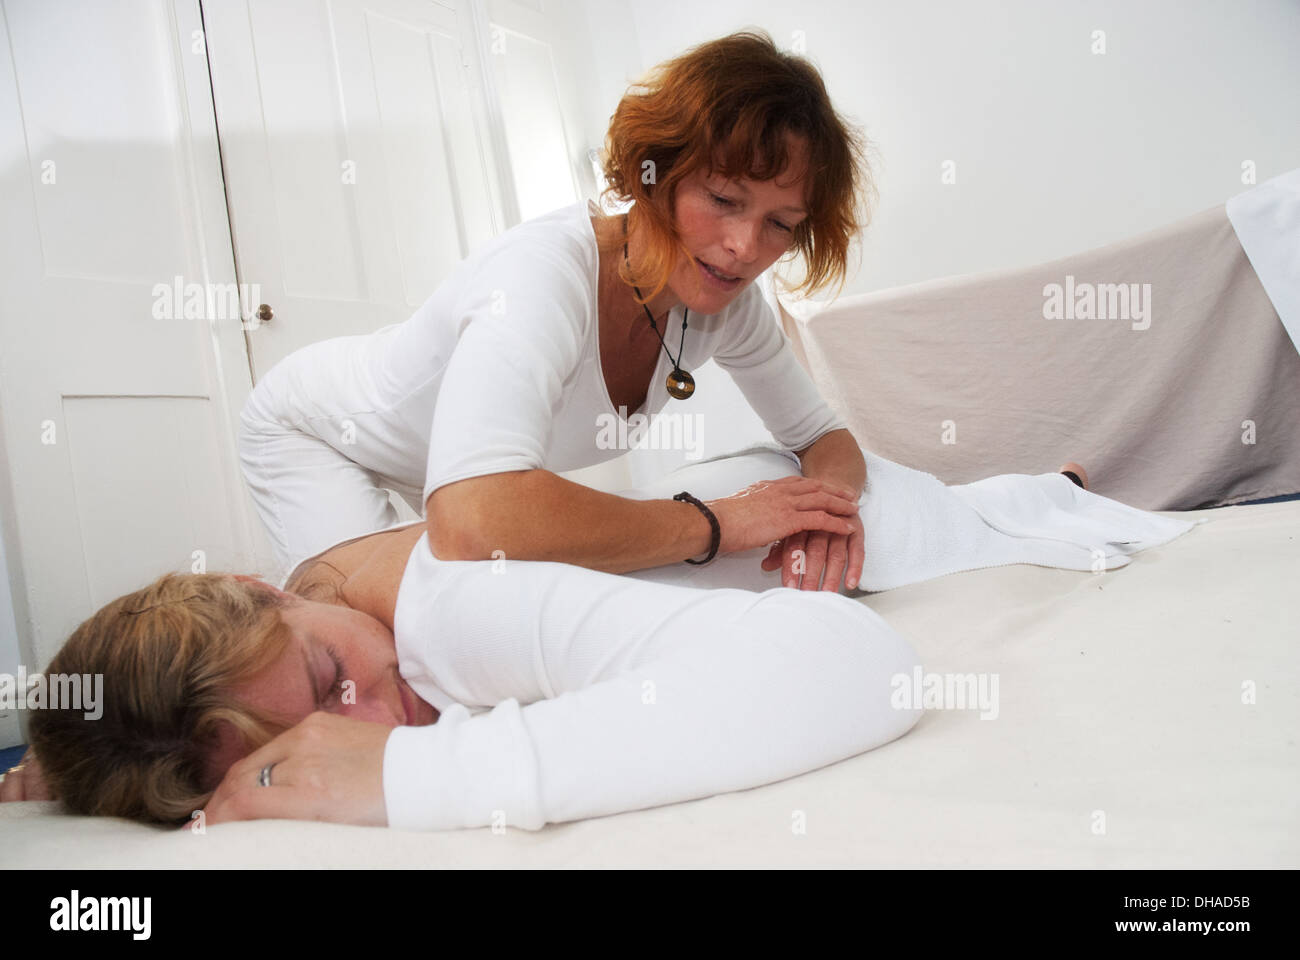 A masseur performing a shiatsu massage in a white treatment room - Stock Image